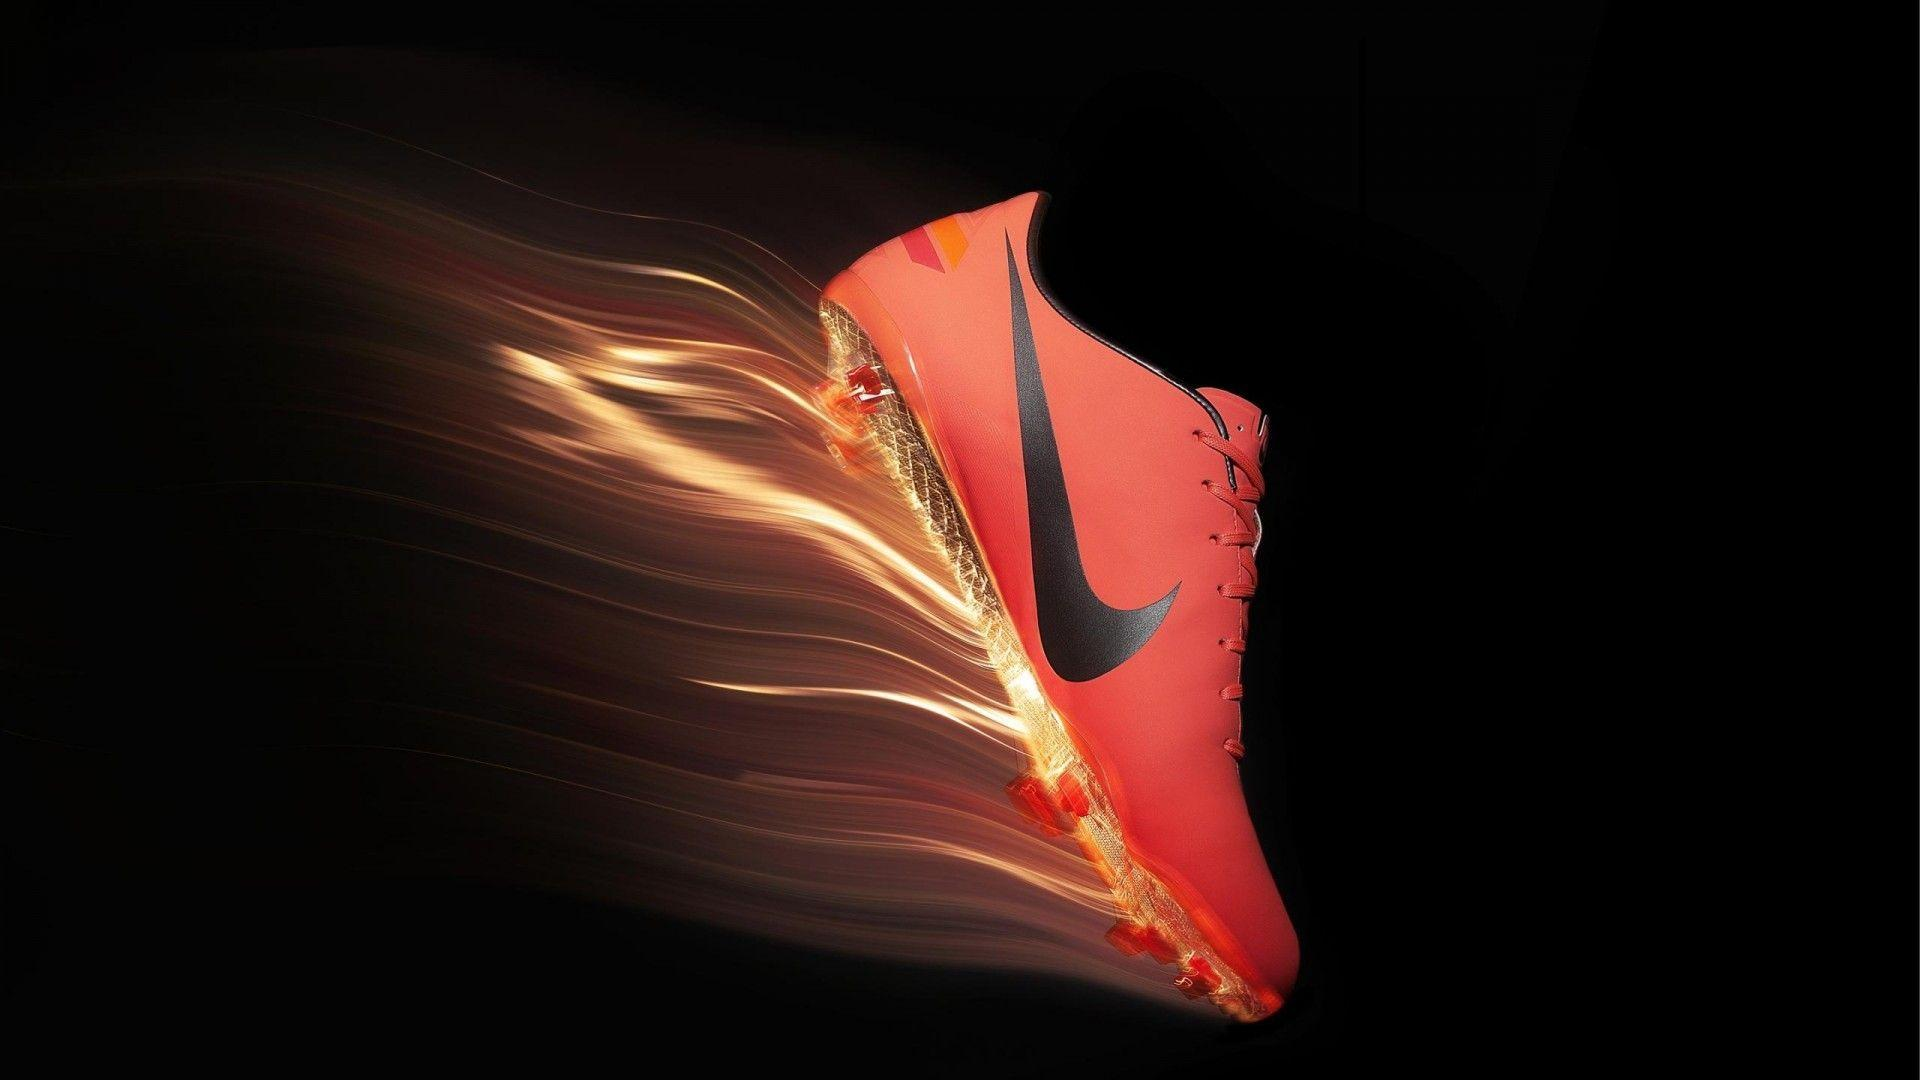 Nike Shoes Wallpapers - Wallpaper Cave